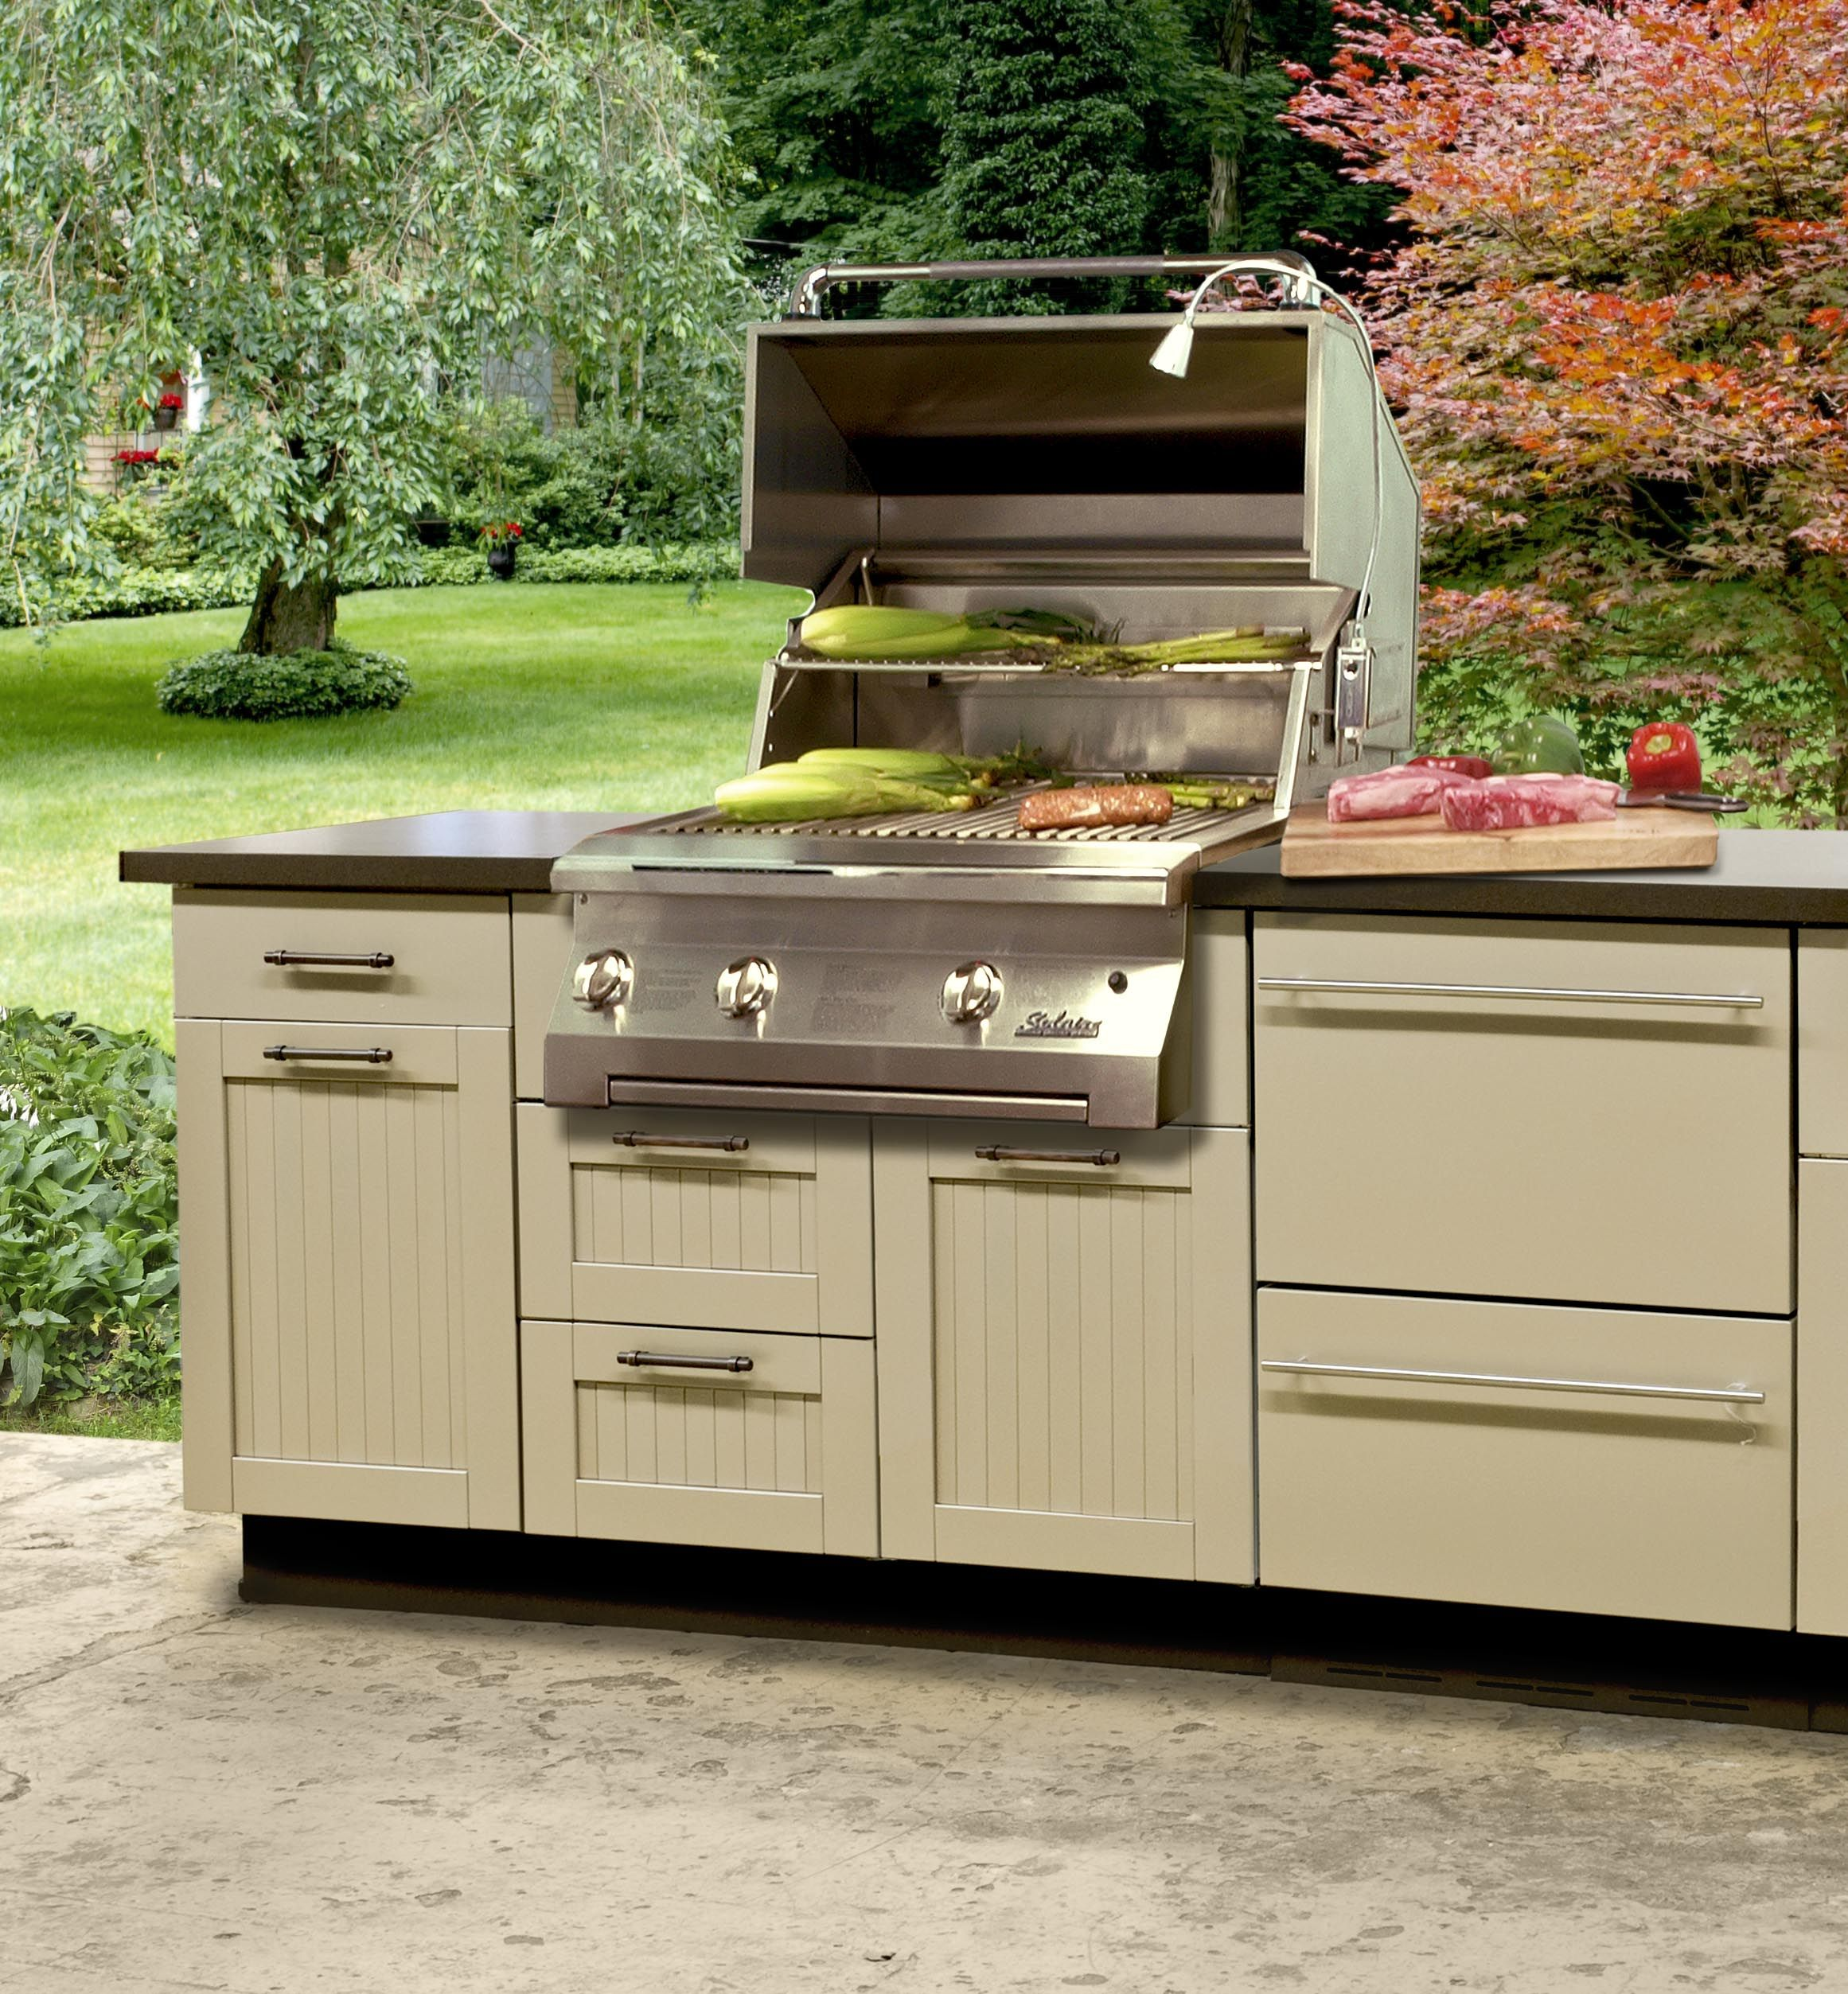 awesome best outdoor kitchen ideas on a budget outdoor kitchen design patio kitchen simple on outdoor kitchen ideas on a budget id=56095